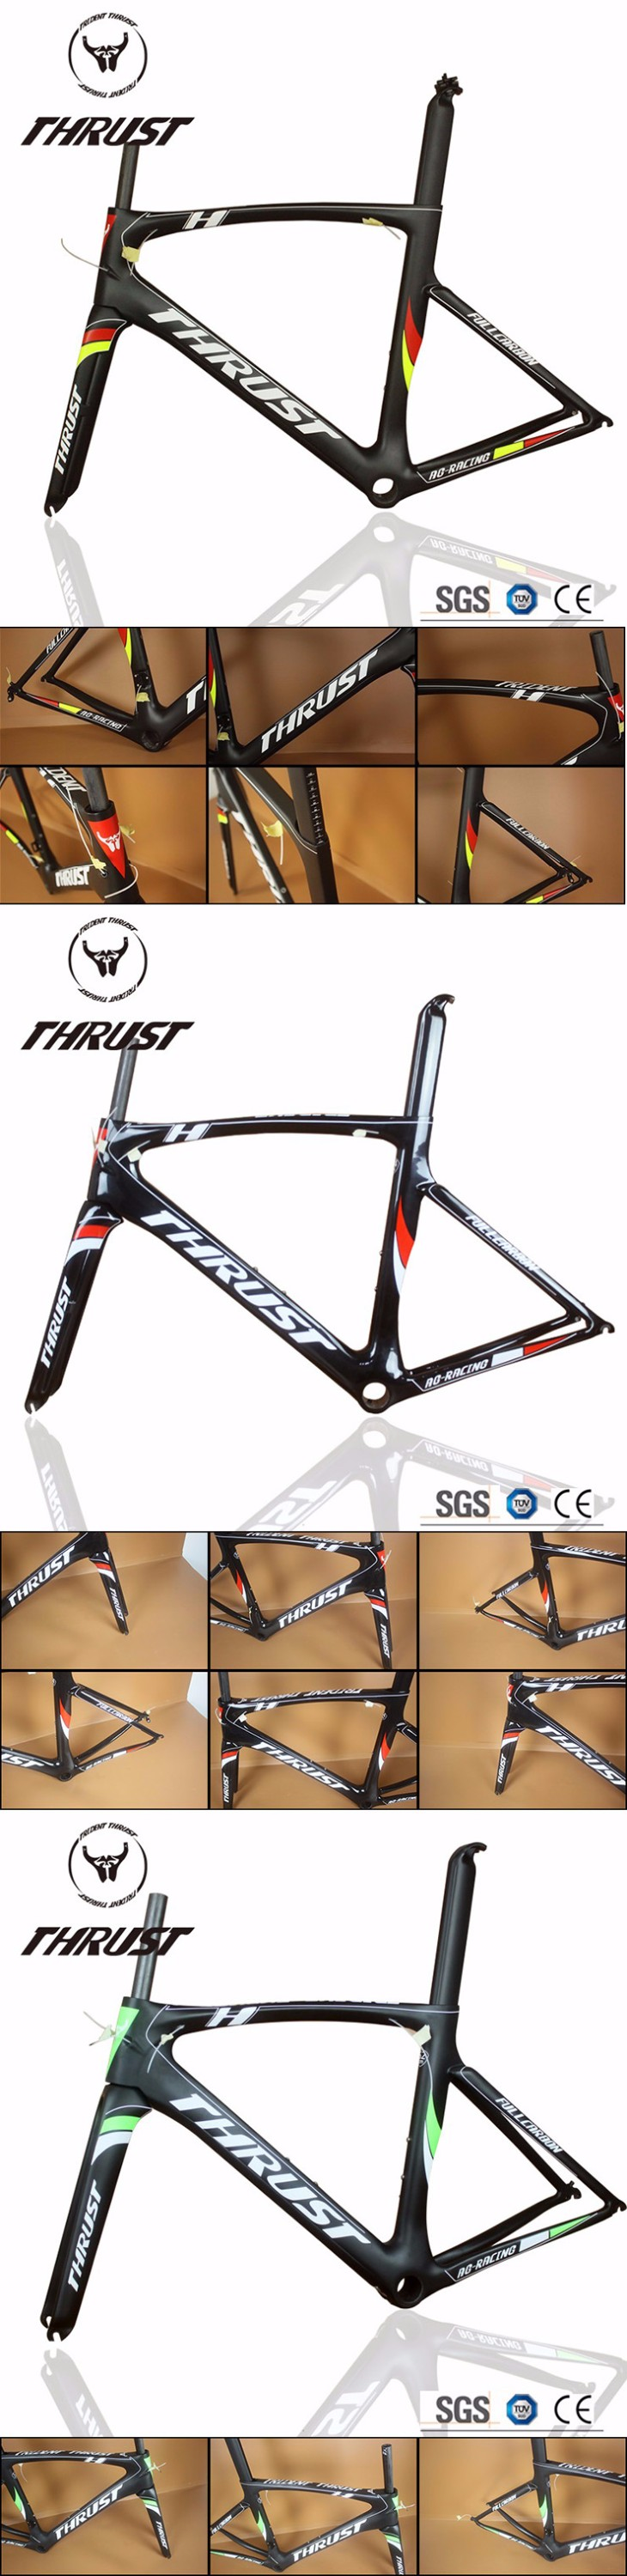 THRUST AG RACING-Version T800 Carbon Fiber UD Sales Promotion/2 Years Warranty OEM Customized Acceptable Carbon Road Bike frame